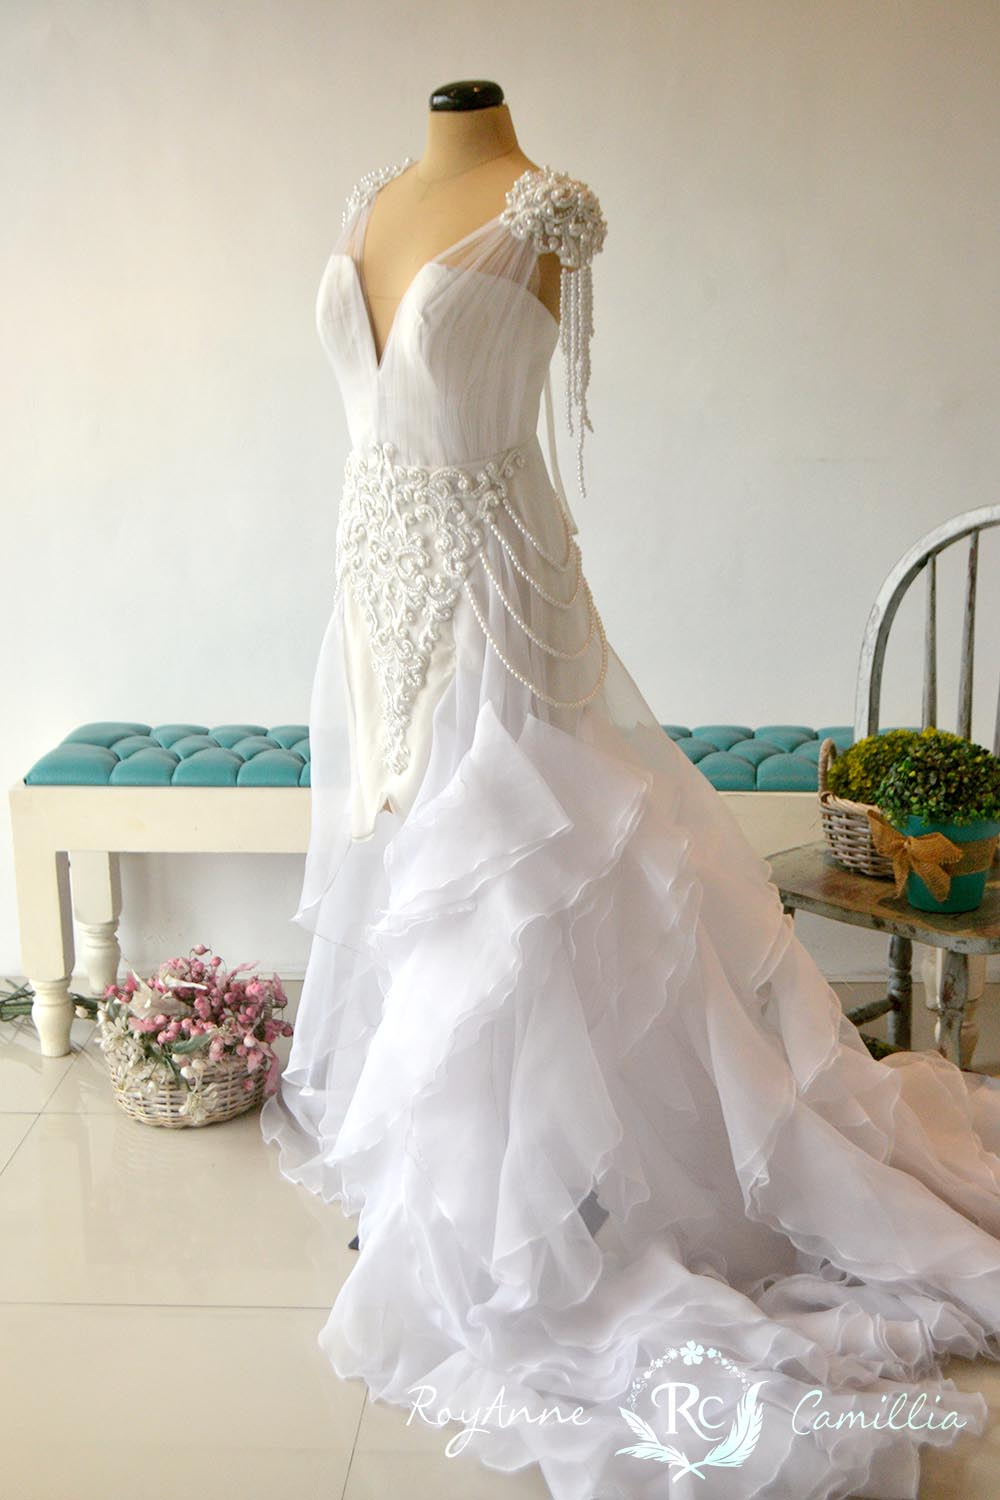 Vivian - RoyAnne Camillia Couture- Bridal Gowns and Gown rentals in ...